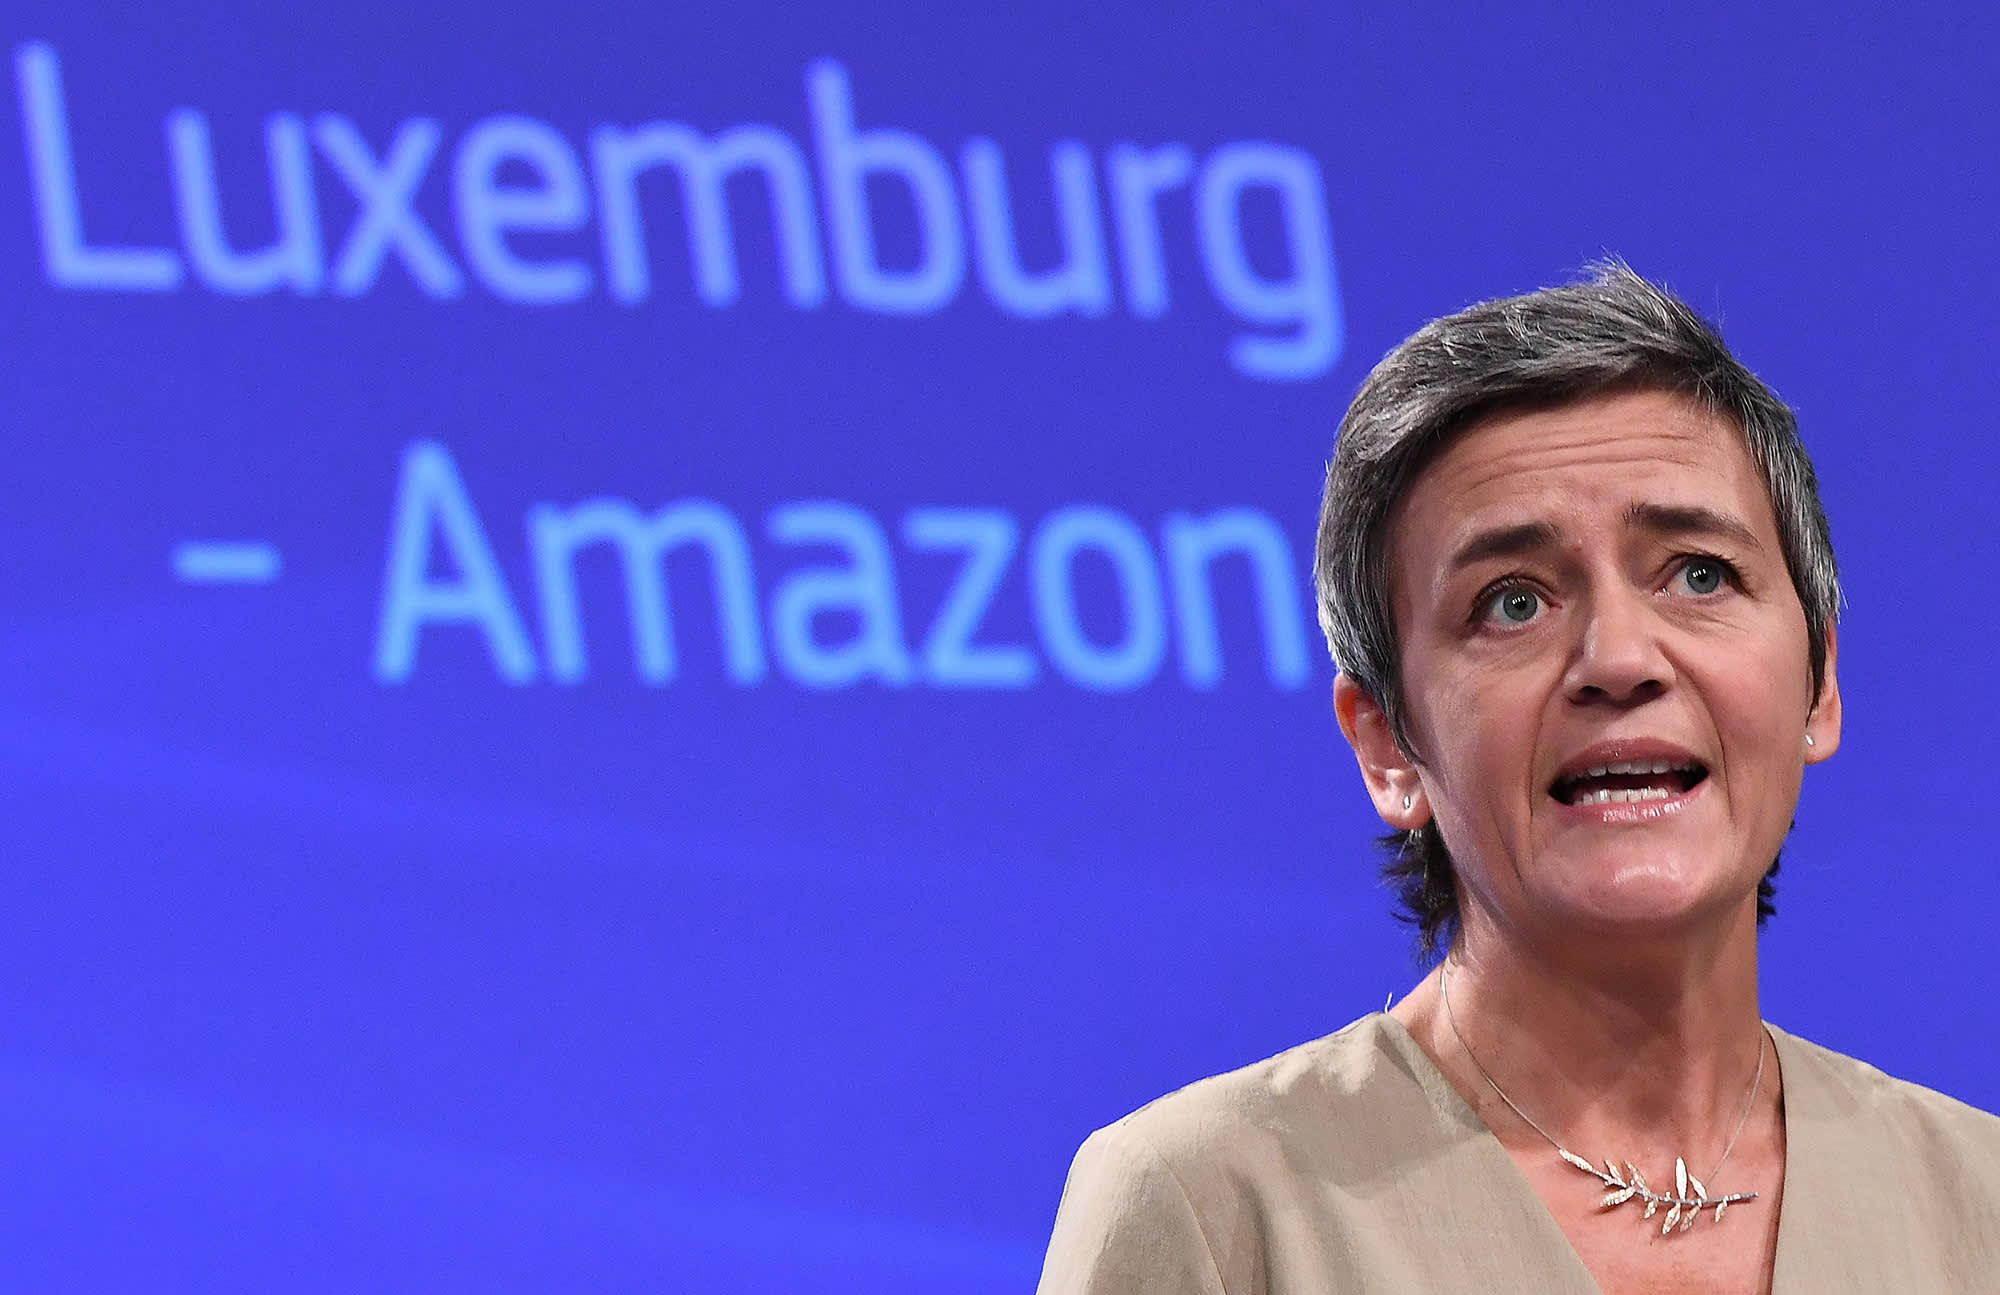 EU to investigate Amazon over possible anti-competitive business practices